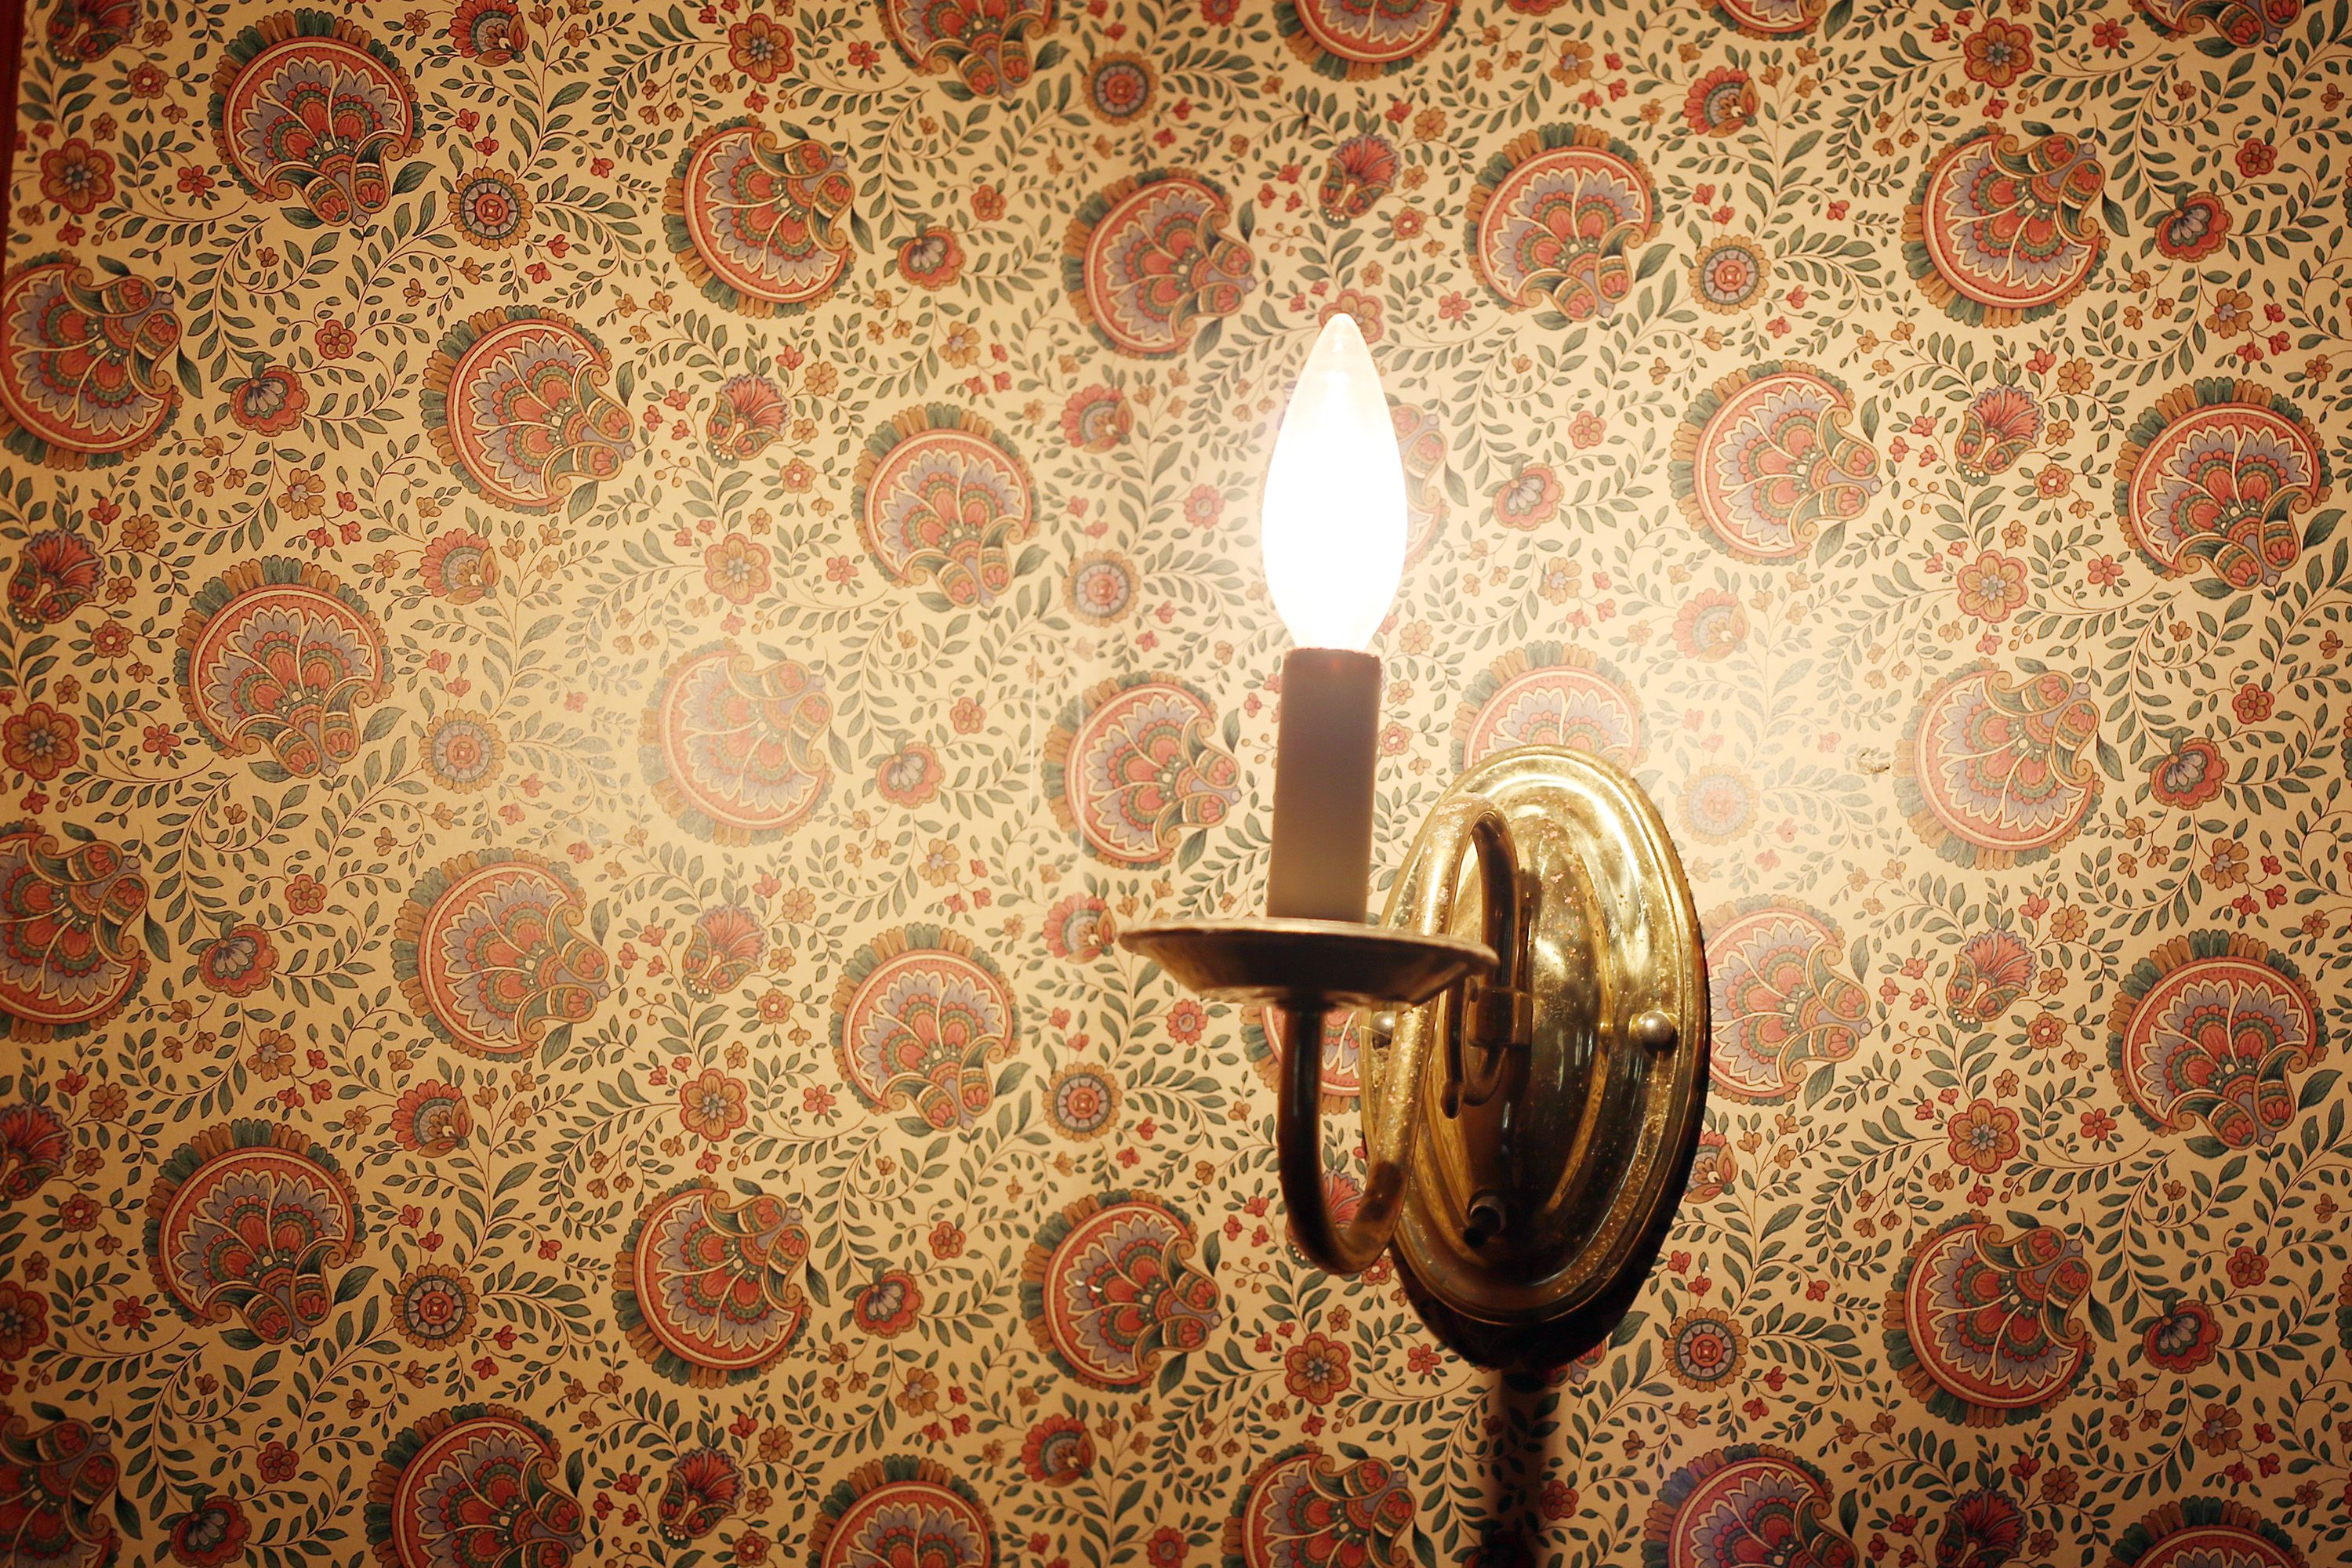 How To Remove Wallpaper | Removable wallpaper, Remove ...